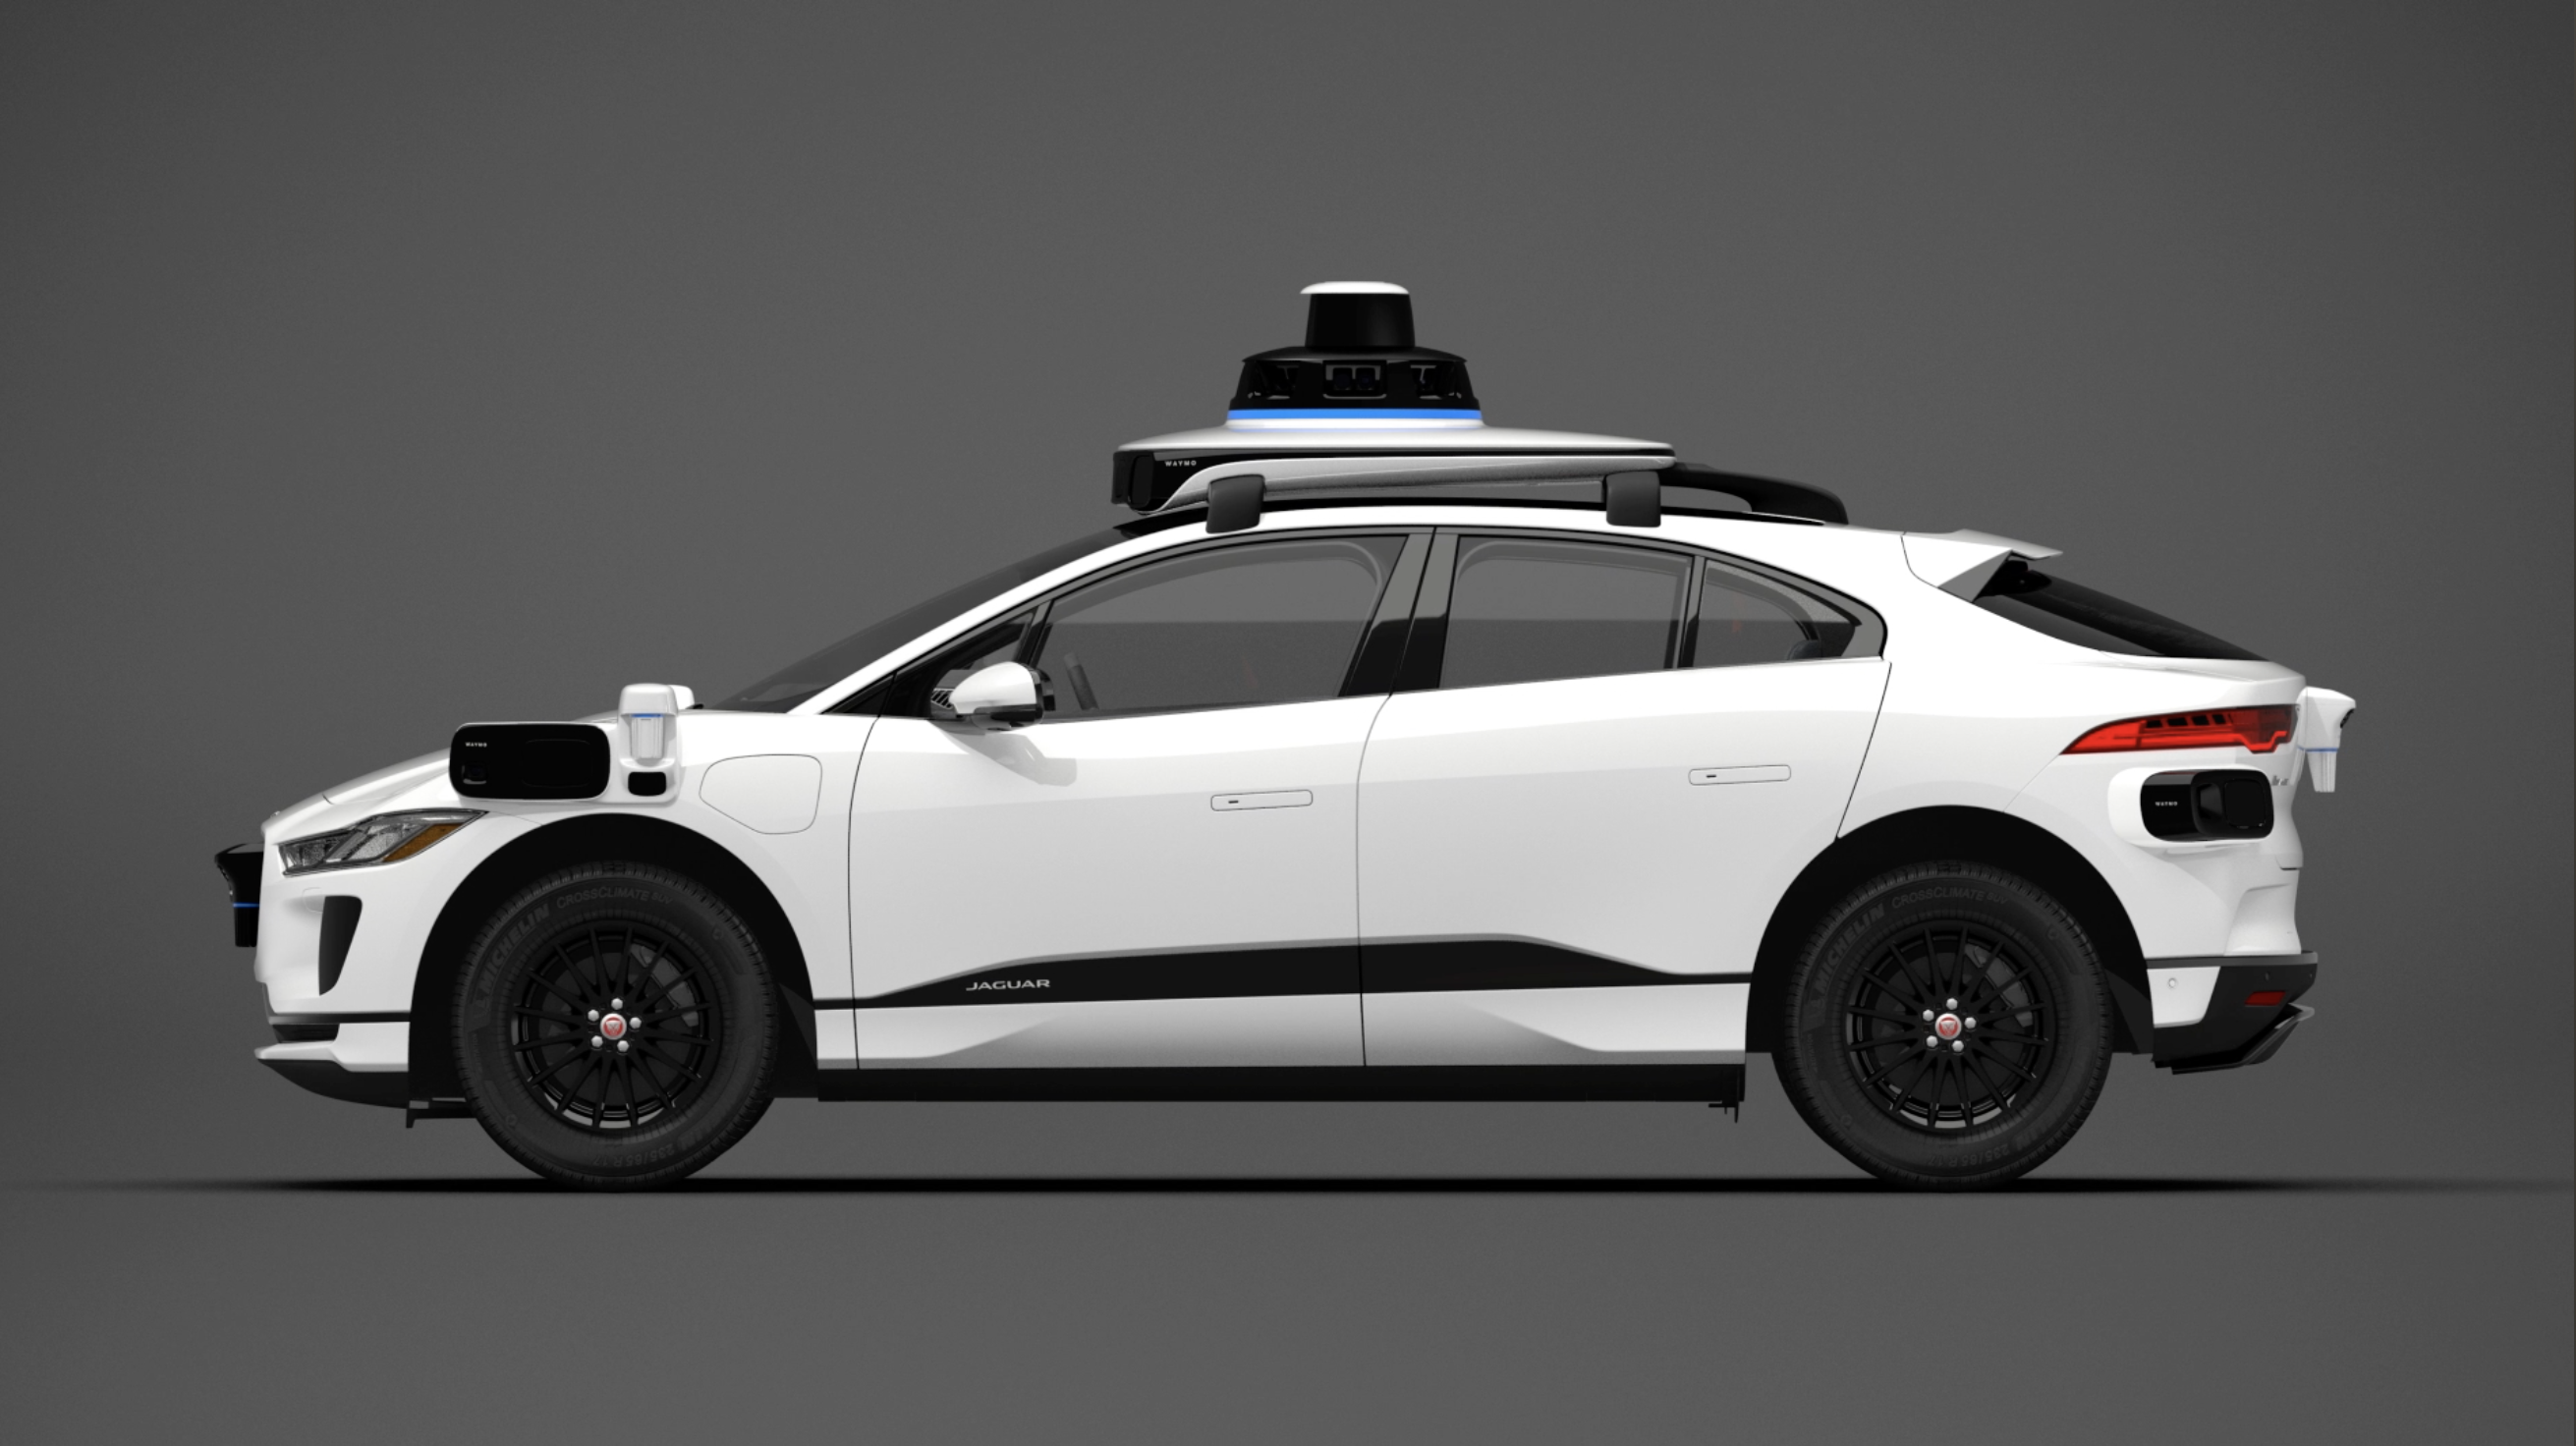 Introducing our fifth-generation Waymo Driver